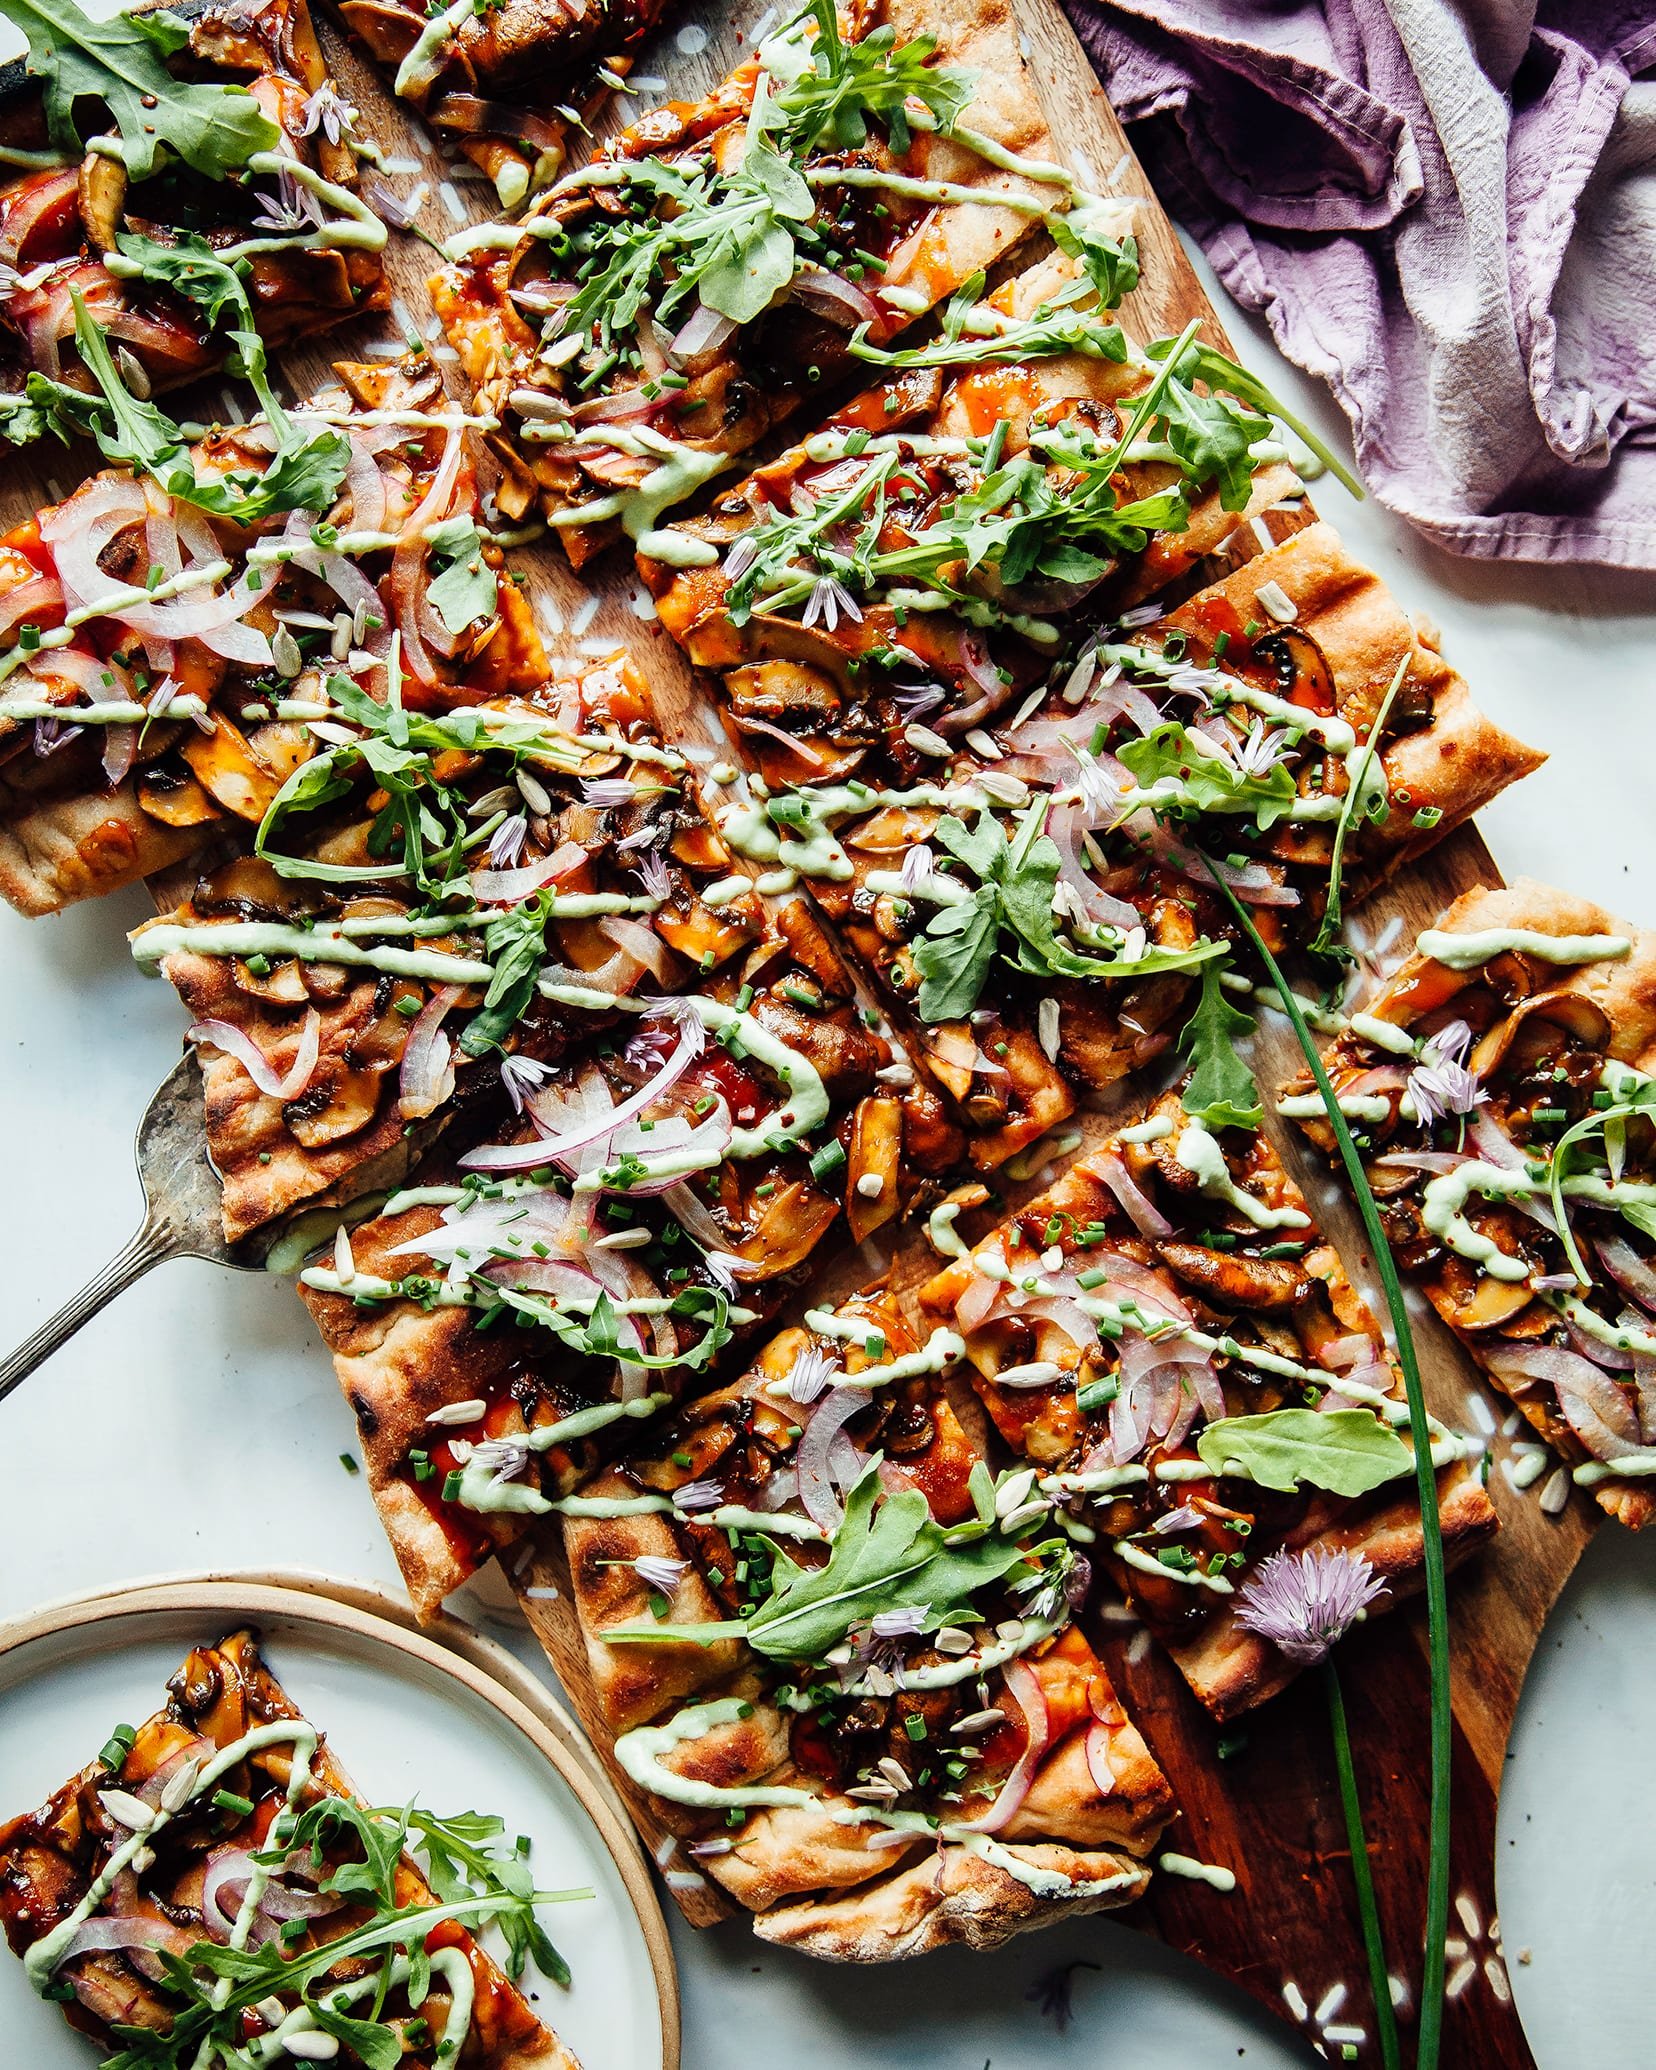 An overhead shot of a grilled flatbread with mushrooms, red onions, BBQ sauce, and a drizzle of a pale green chive sauce. The flatbread is cut into square pieces and is garnished with fresh arugula.